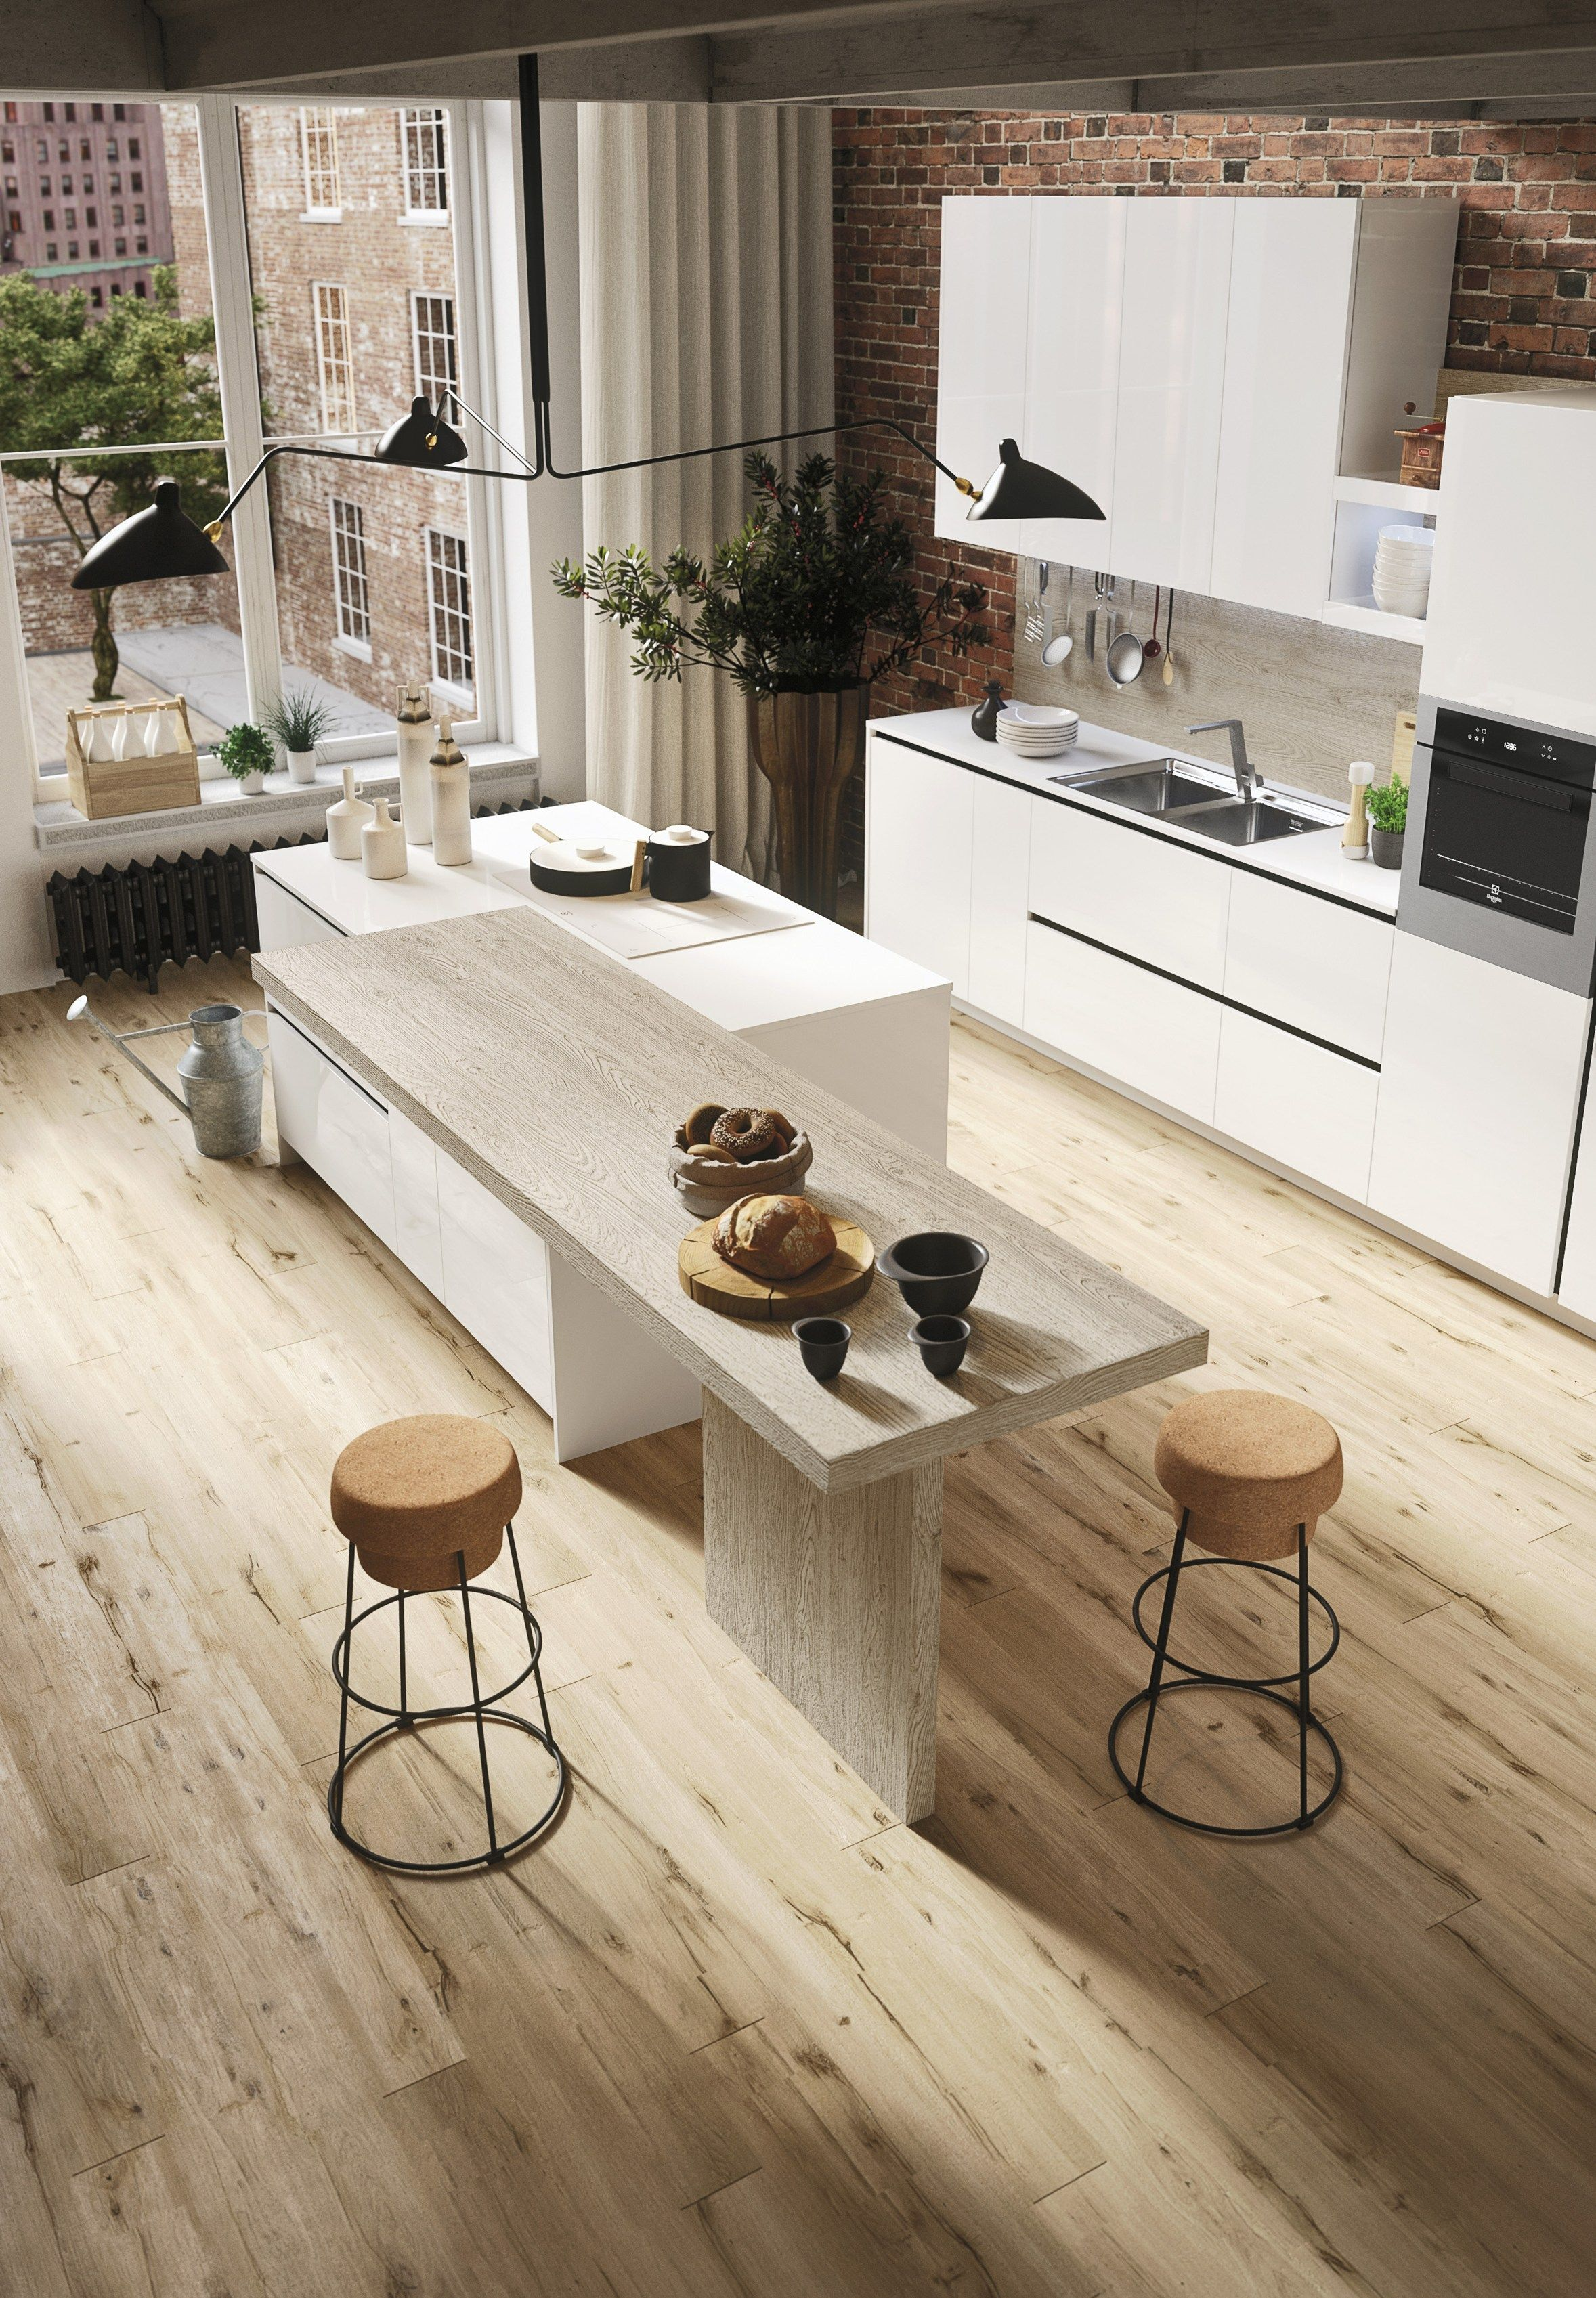 Contemporary style fitted kitchen with island with